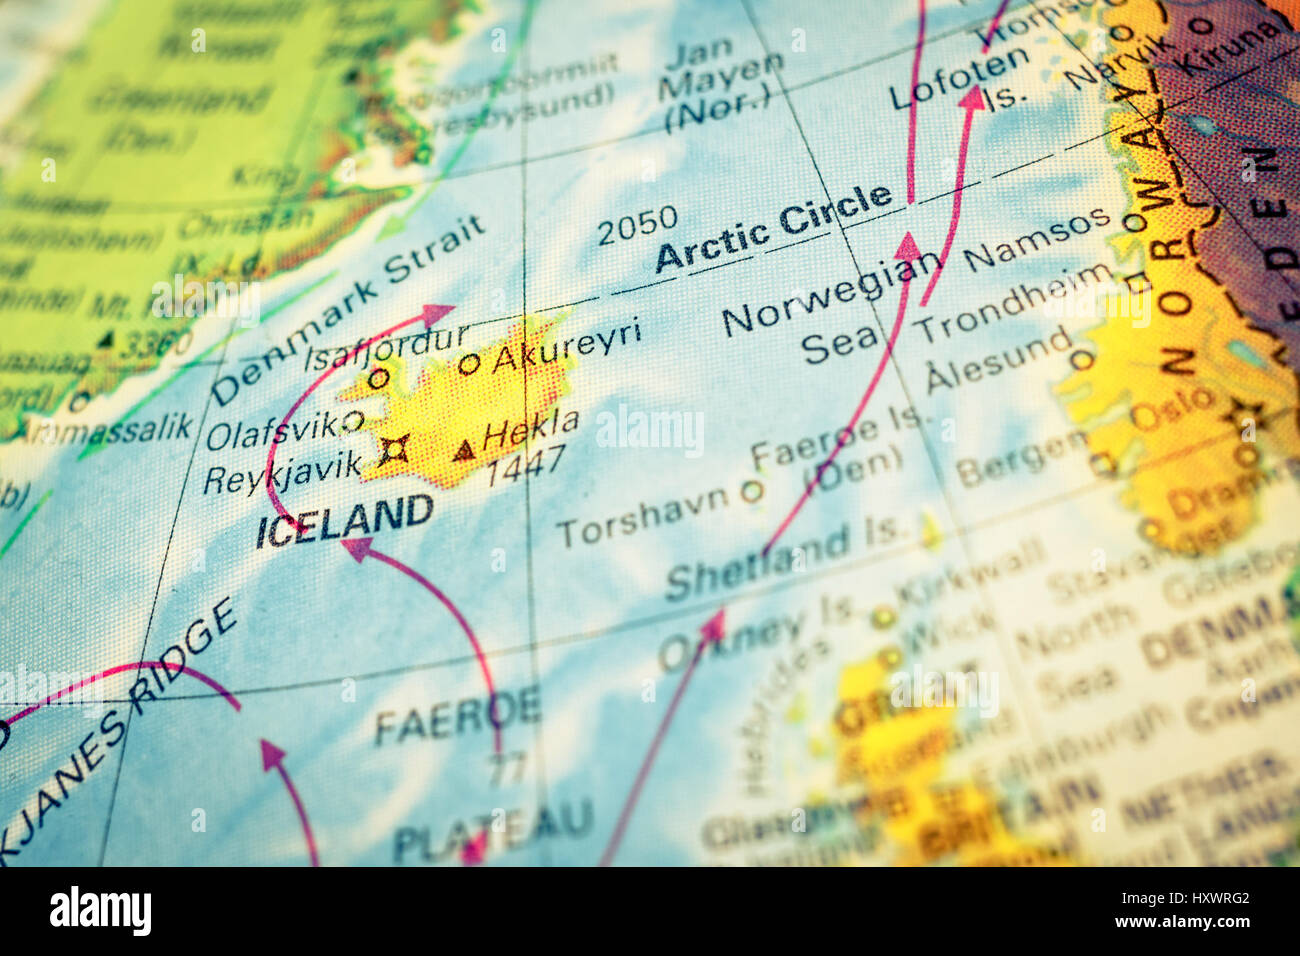 Globe map arctic circle stock photos globe map arctic circle stock map iceland vintage close up macro image of iceland map selective focus reykjavik gumiabroncs